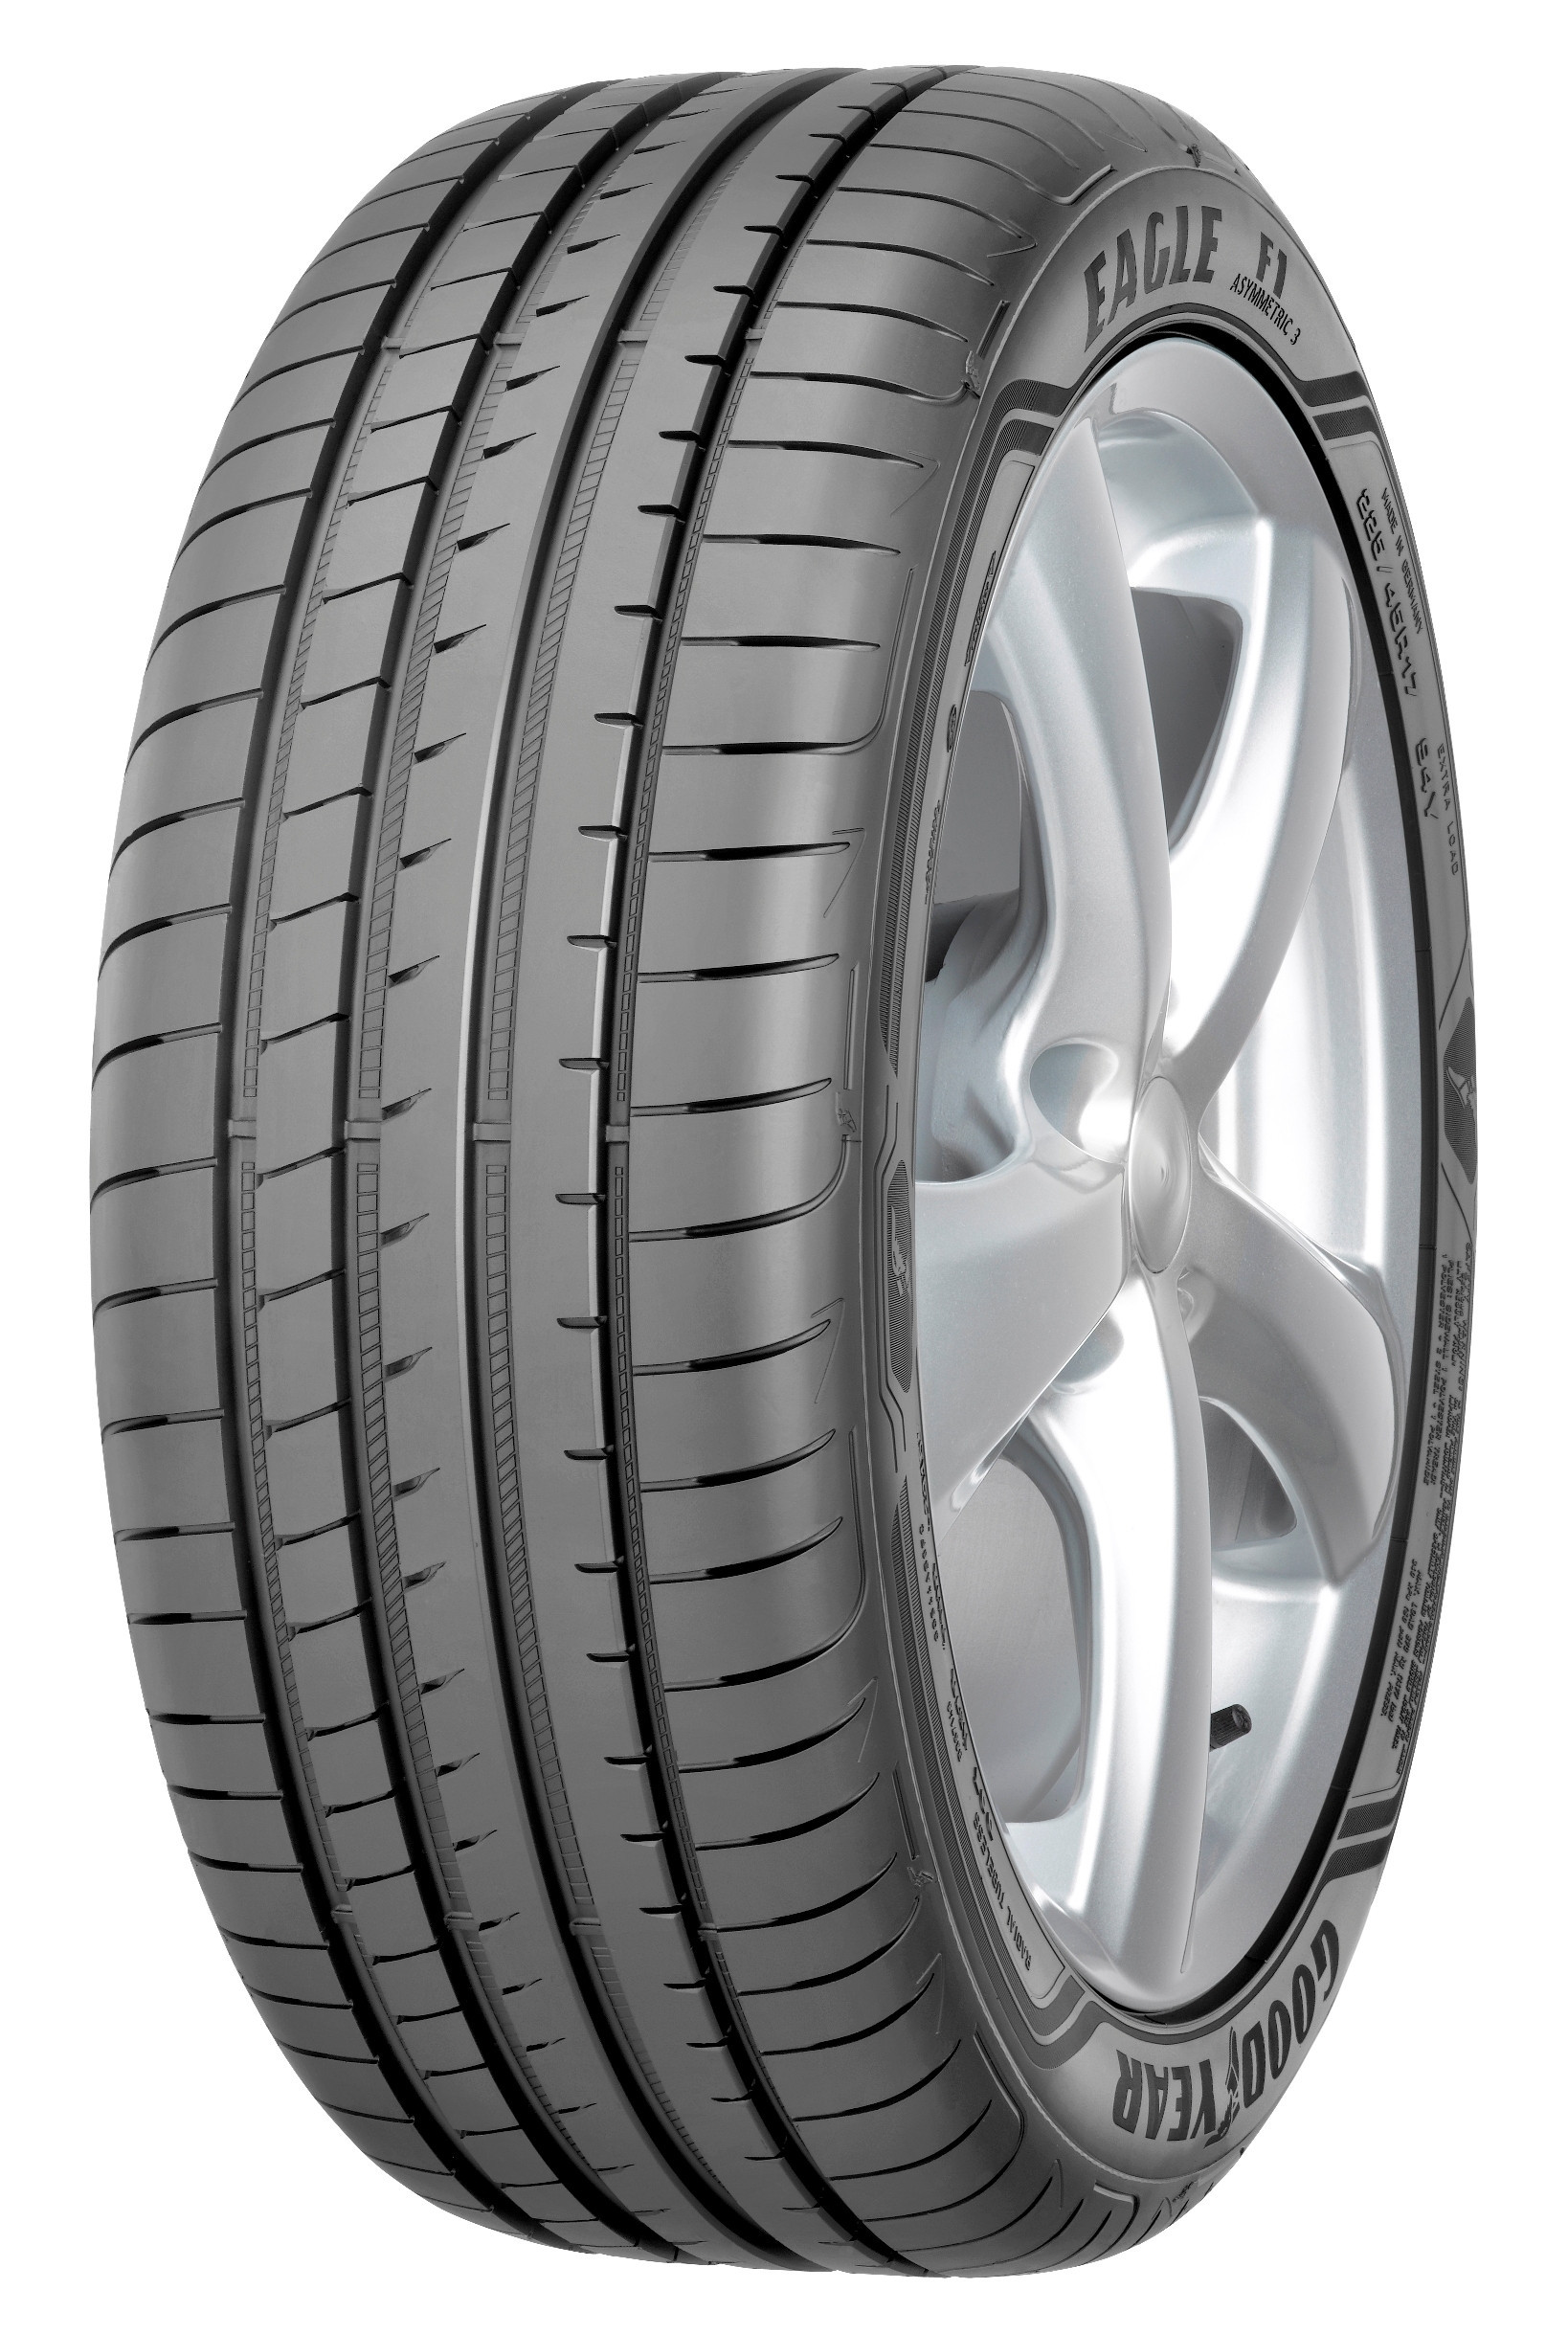 Anvelopa Vara 245/45R17 95Y Goodyear Eagle F1 Asymmetric 3